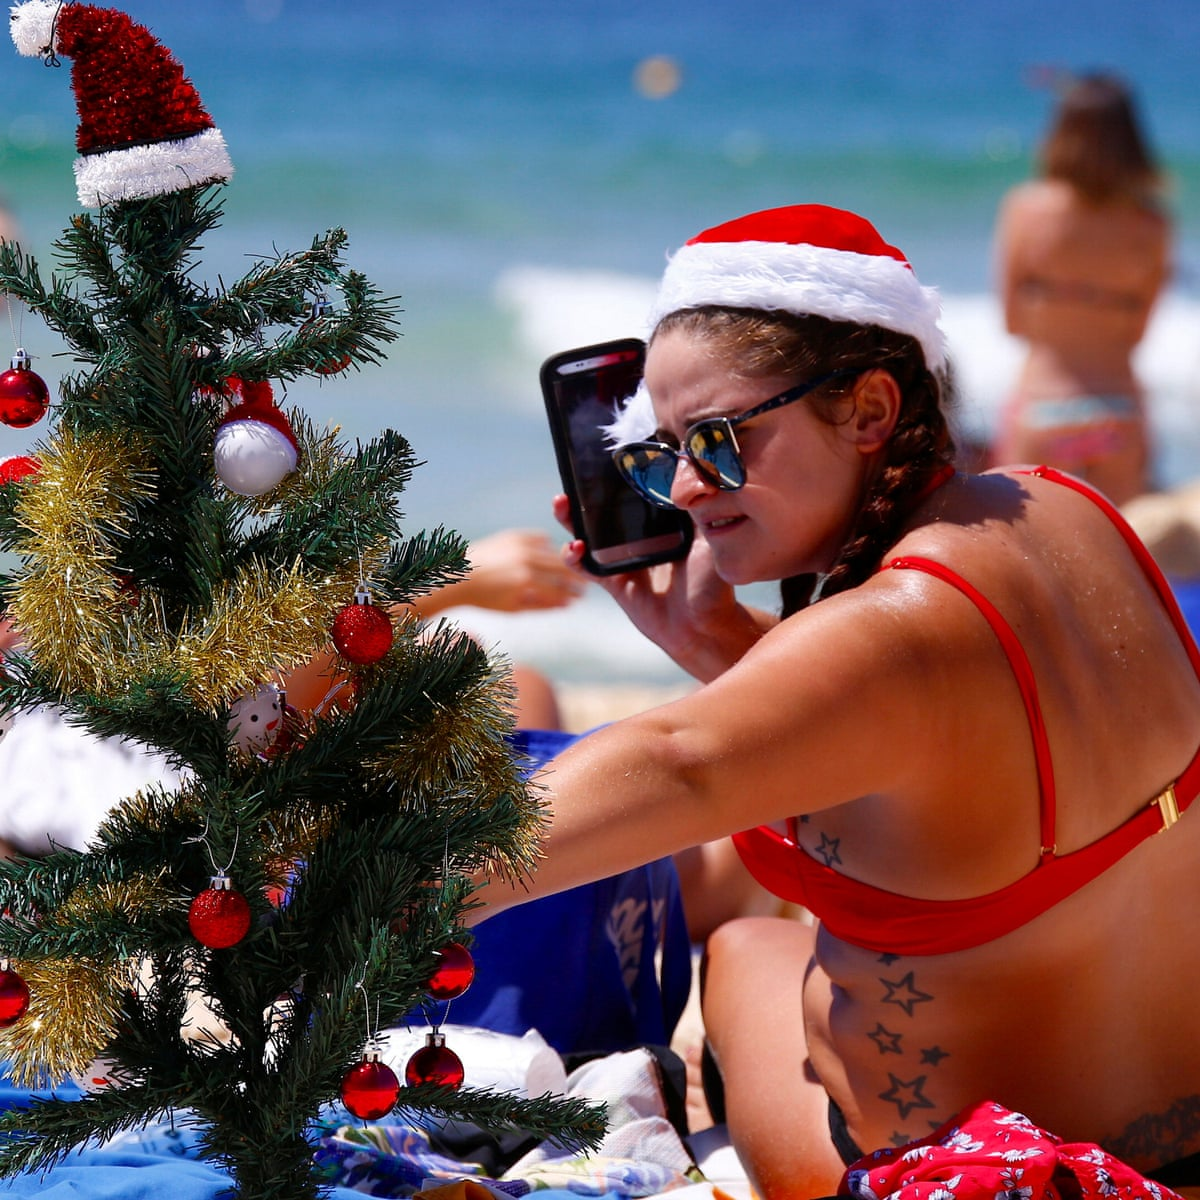 Weather Forecast For Christmas 2021 Christmas Day Weather Forecast Across Australia And How It Compares To The Last 10 Years Australia Weather The Guardian